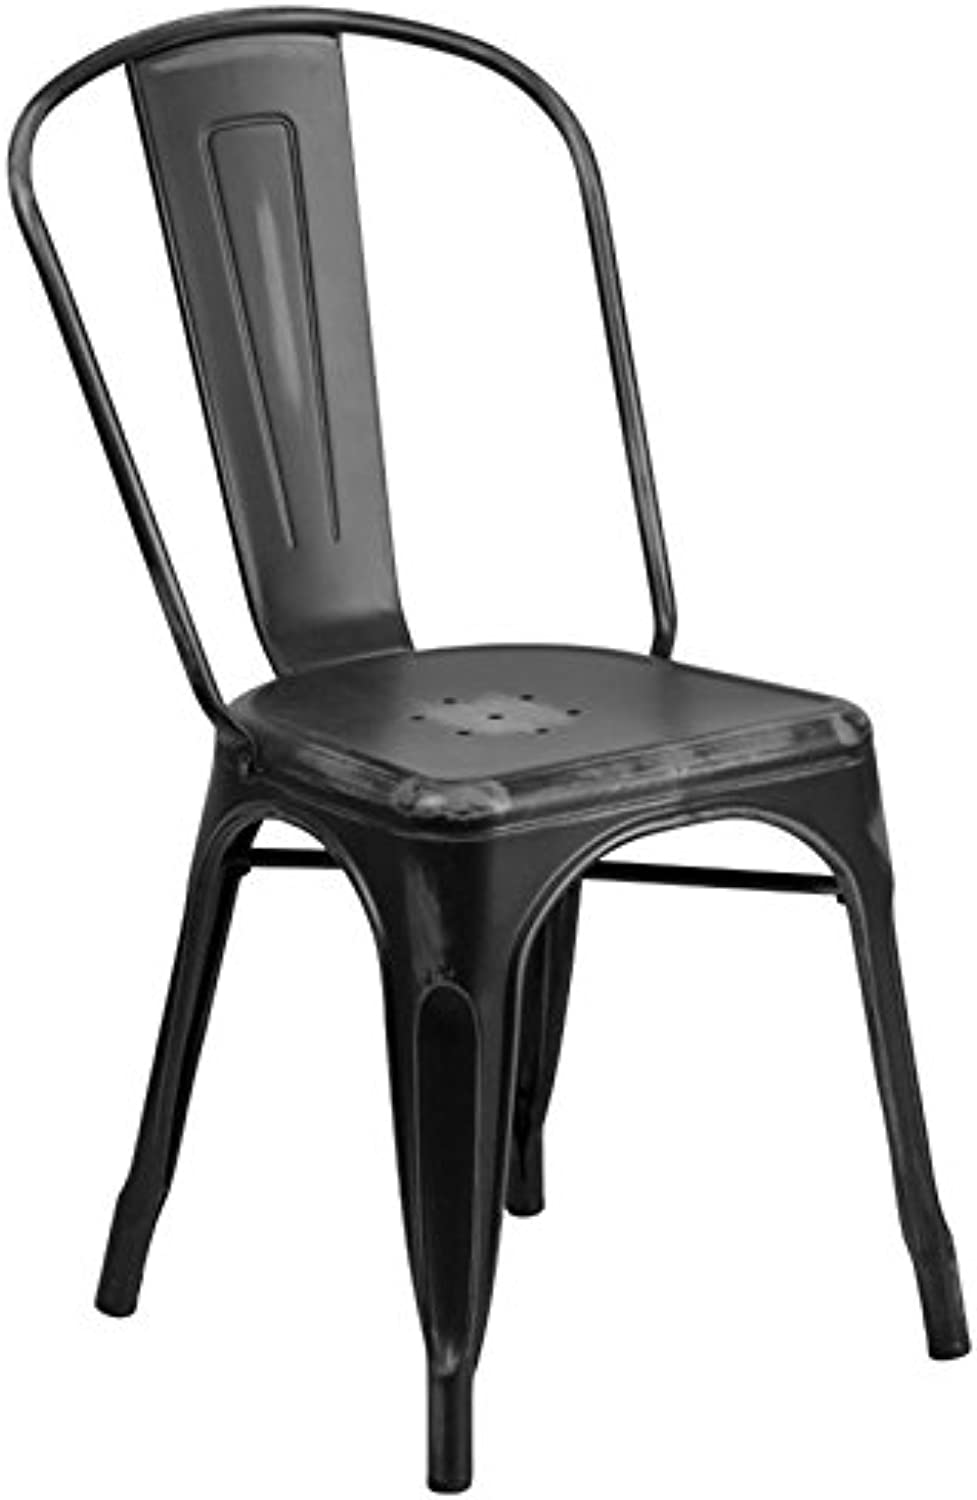 Bowery Hill Metal Dining Chair in Distressed Black